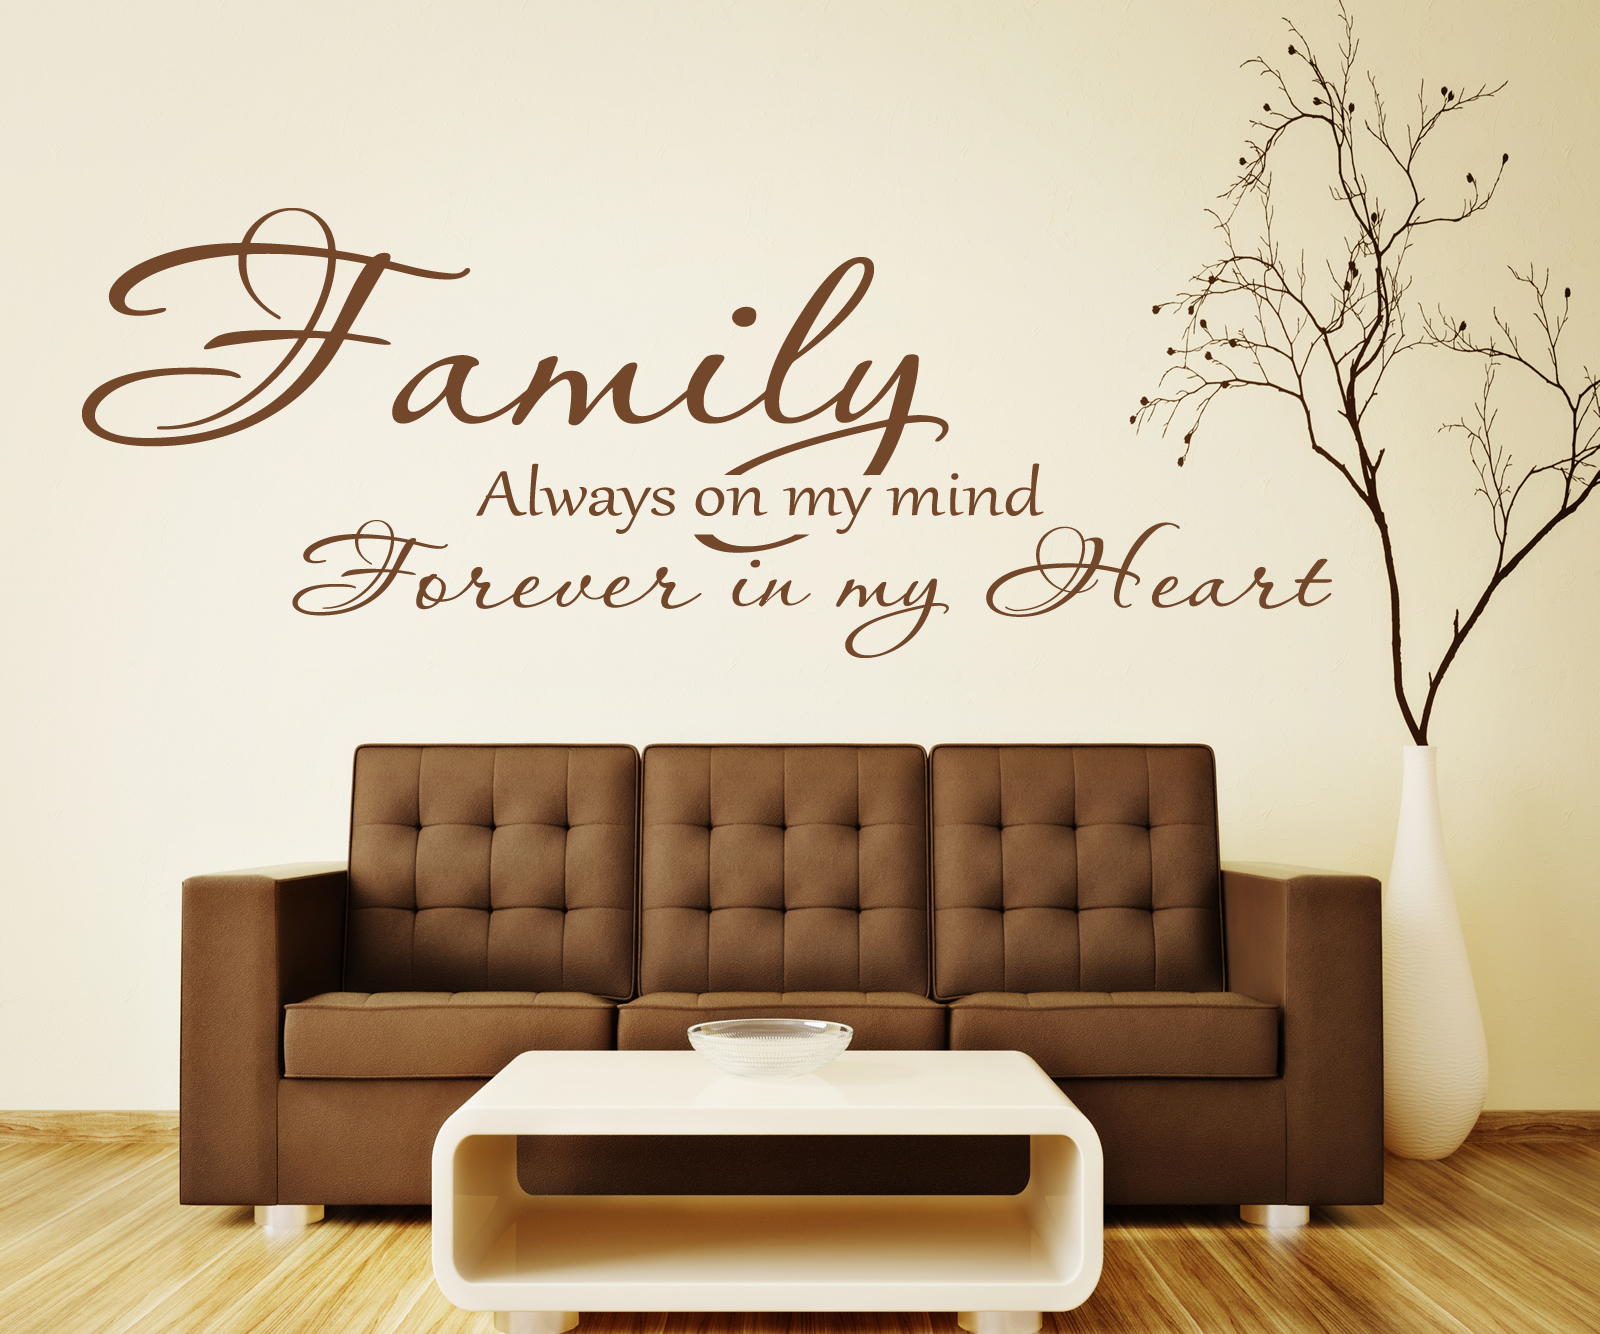 BEDROOM LOVE WALL ART DECAL X286 FAMILY FOREVER IN MY HEART WALL STICKER QUOTE